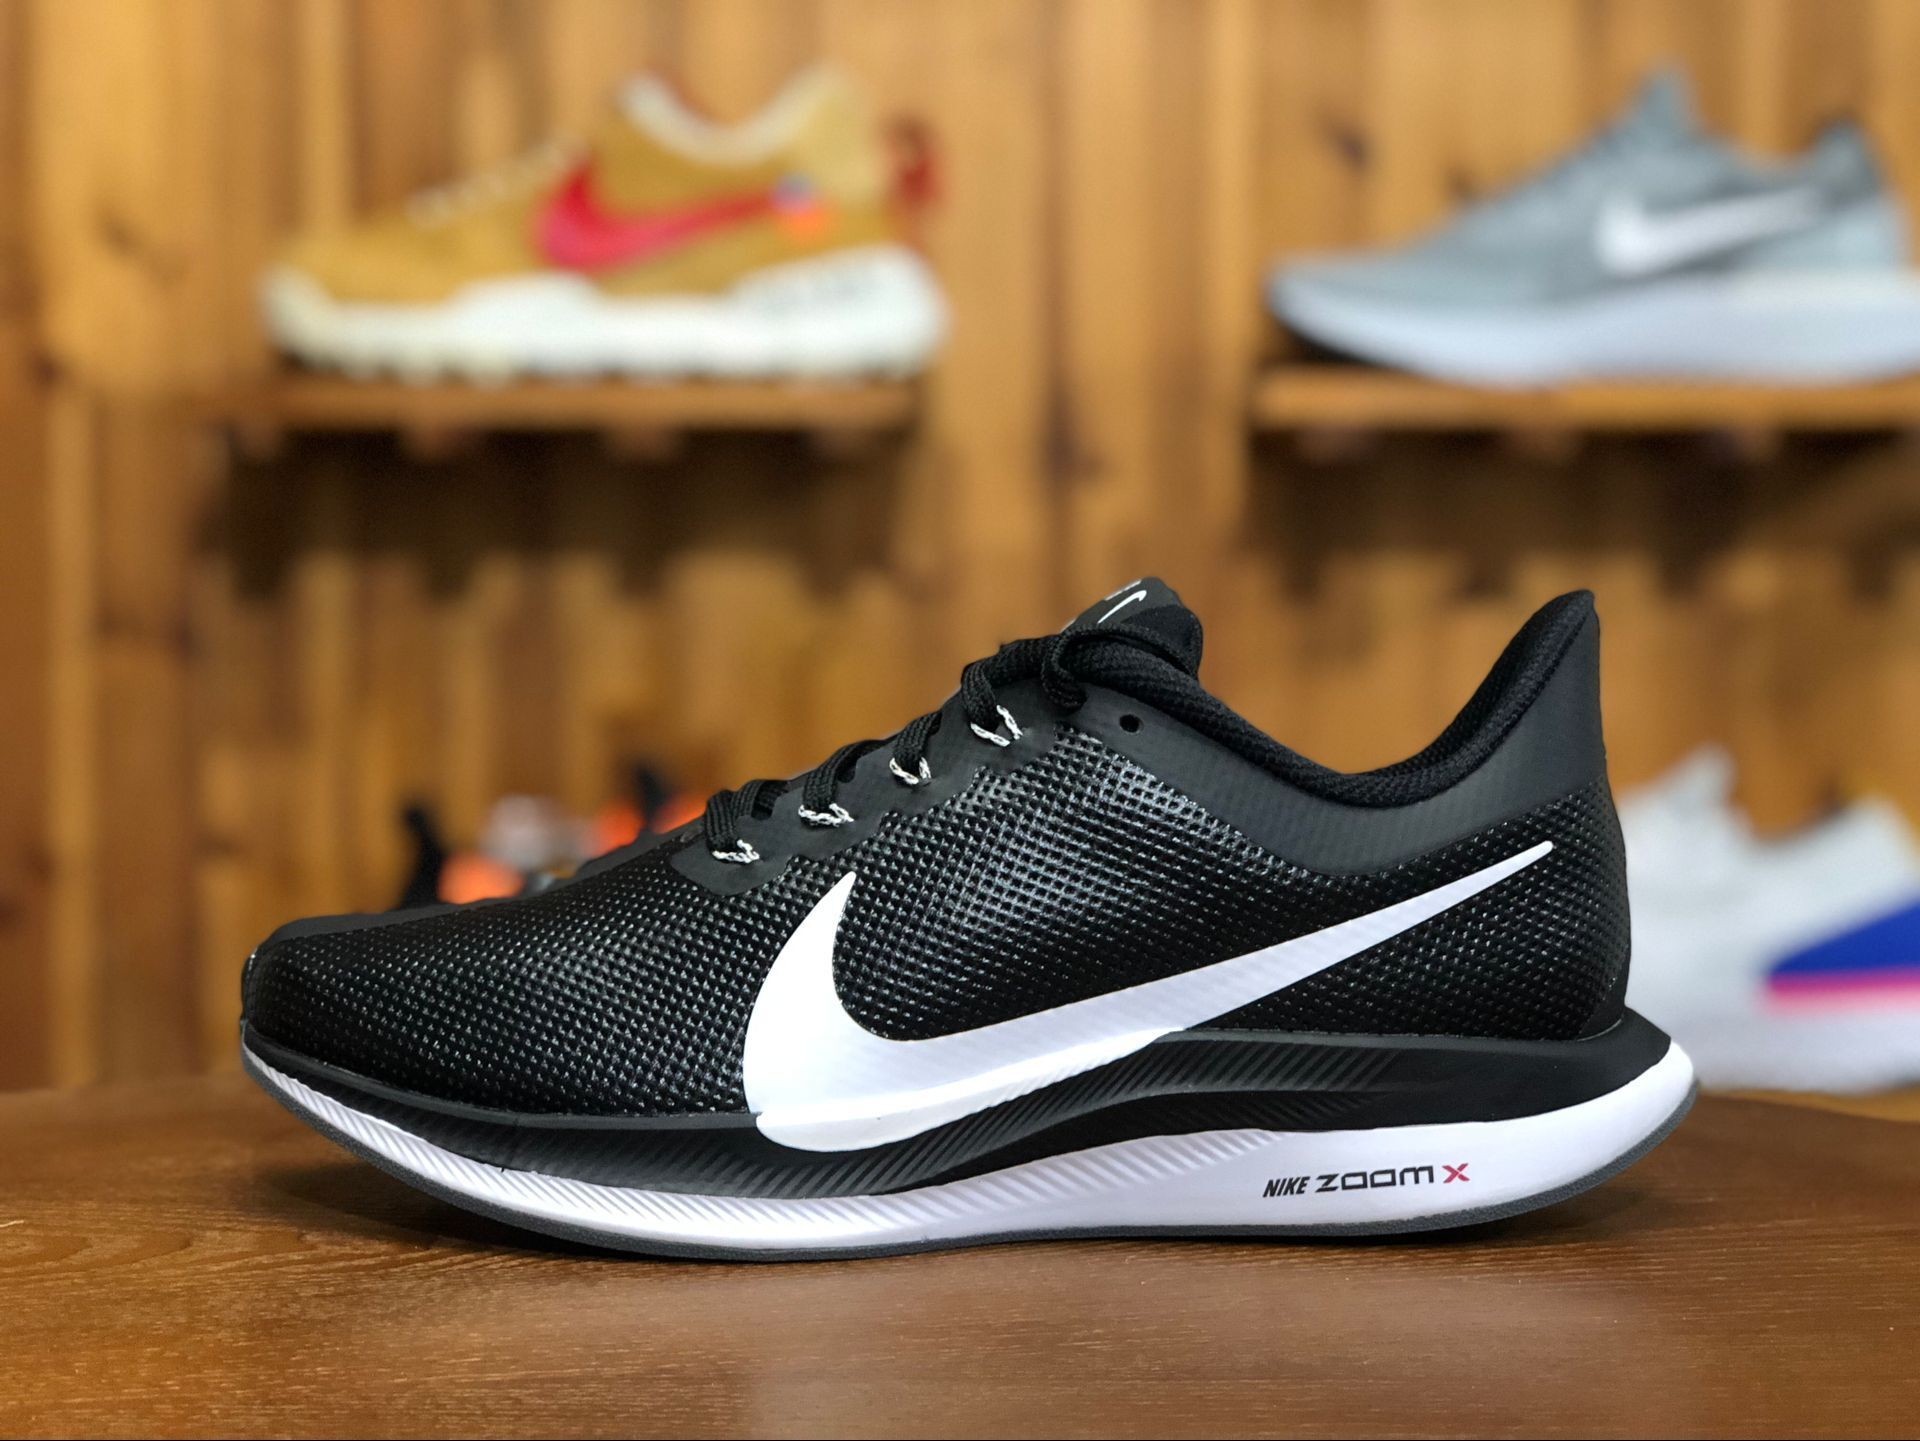 3d8d2ad22bd5b7 Nike Air Zoom Pegasus 35 Turbo Leather Black White Shoe Free Shipping